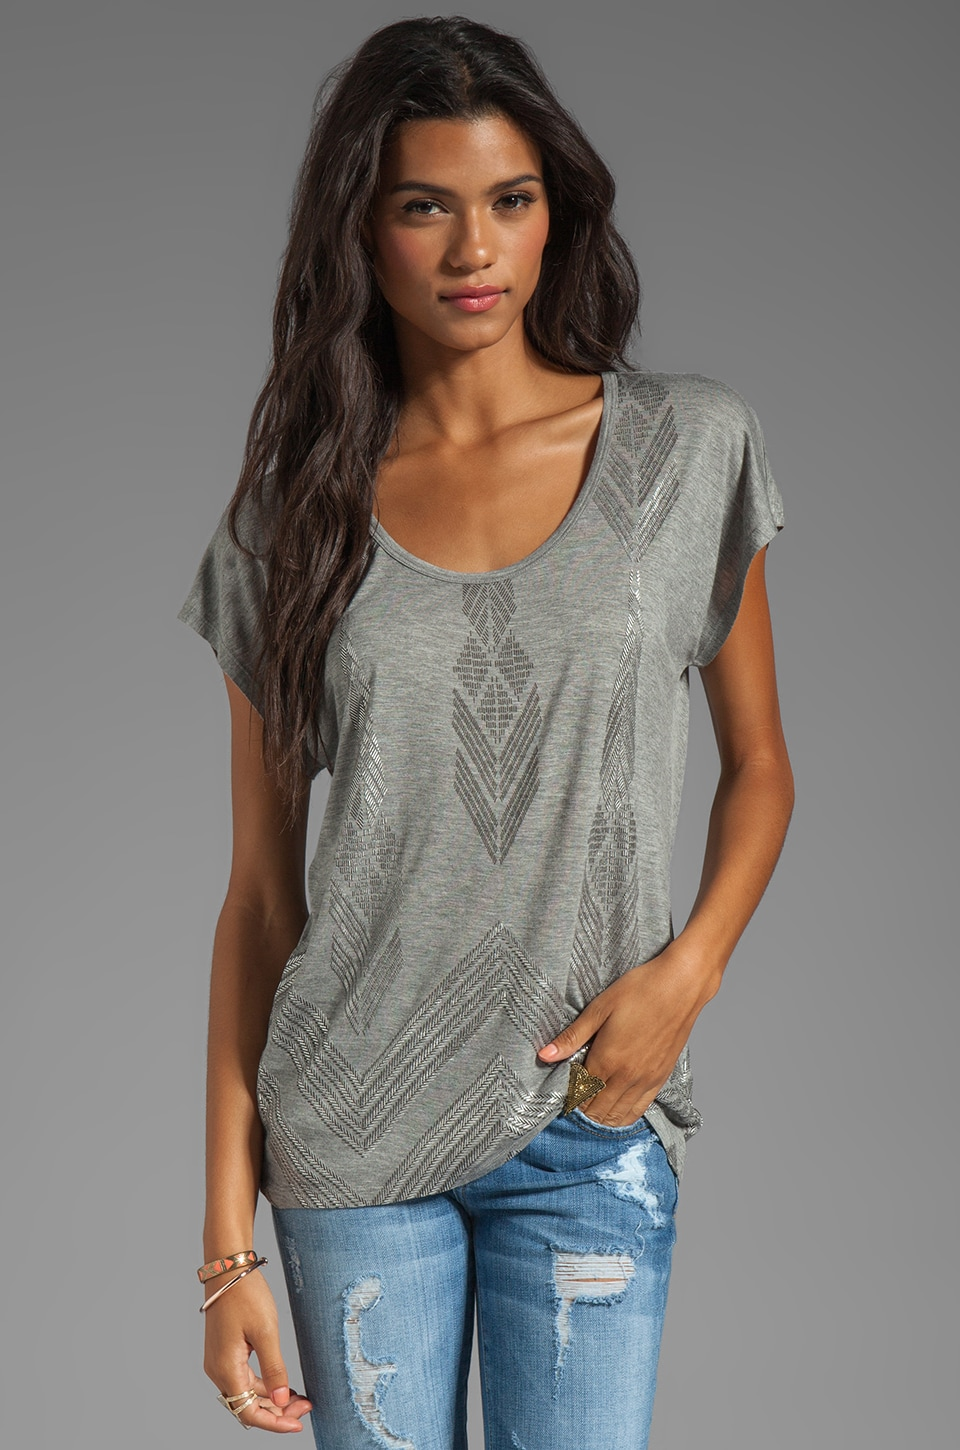 C&C California Foil Heather Grey Viscose Jersey Short Sleeve Hi-Lo Dolman Top in Heather Grey